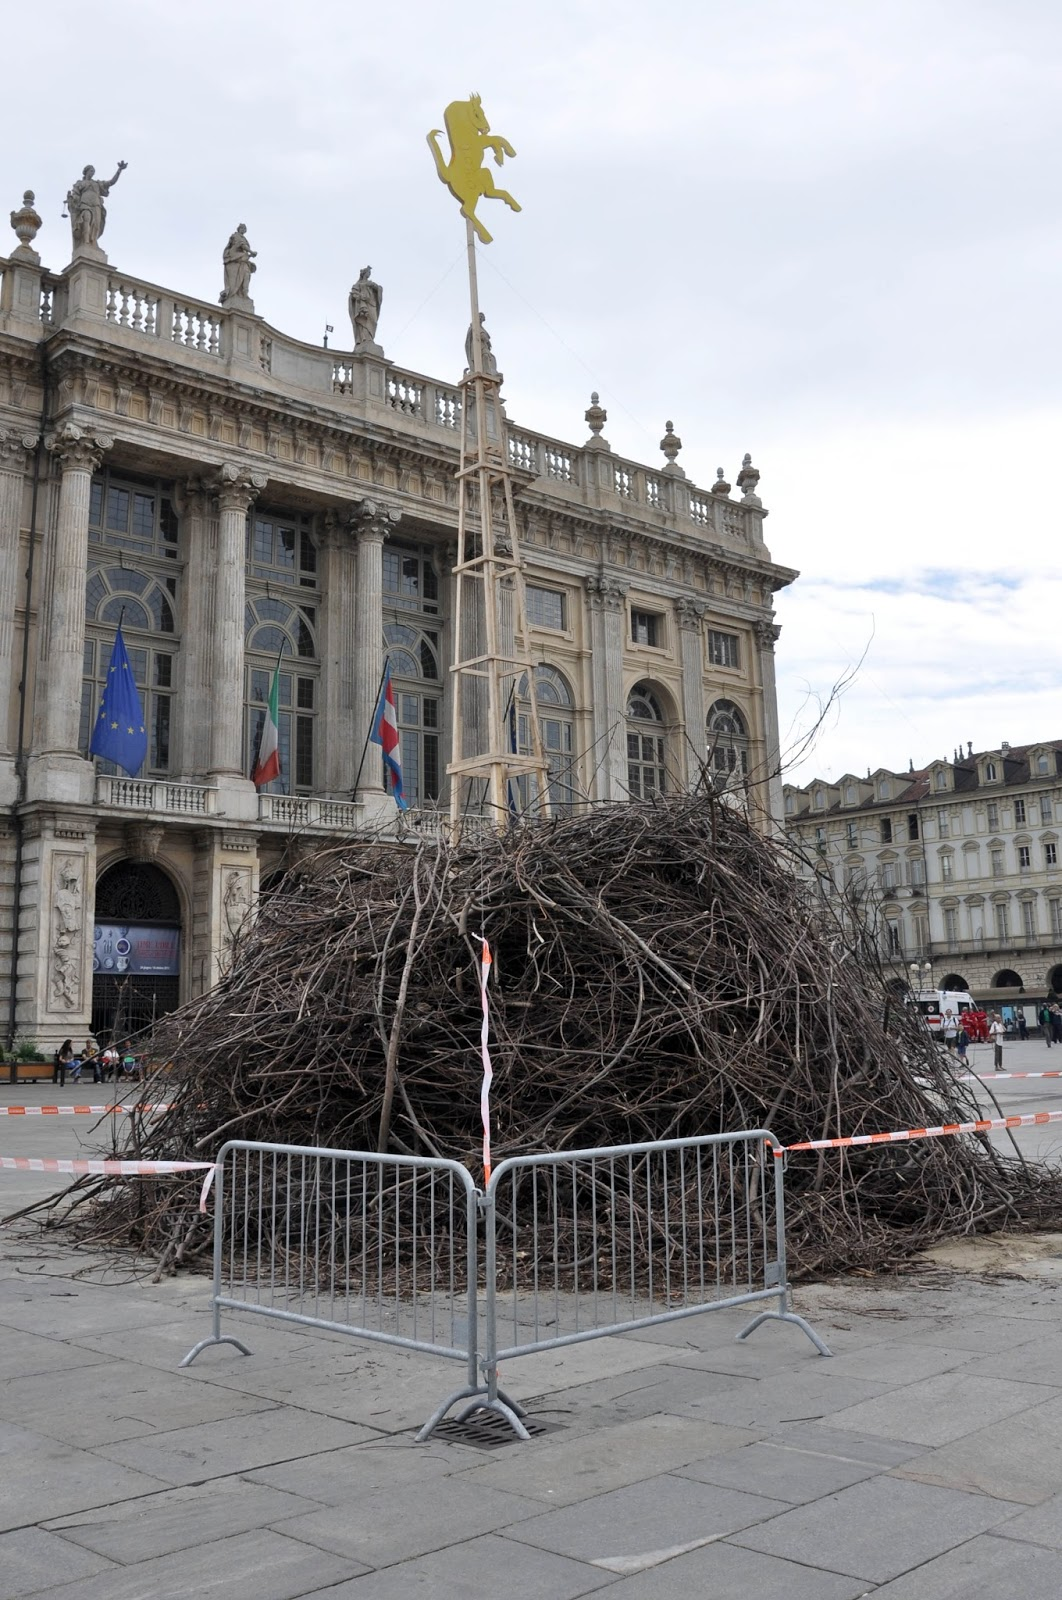 The bonfire on Piazza Castello for the Day of St. John, Turin, Italy